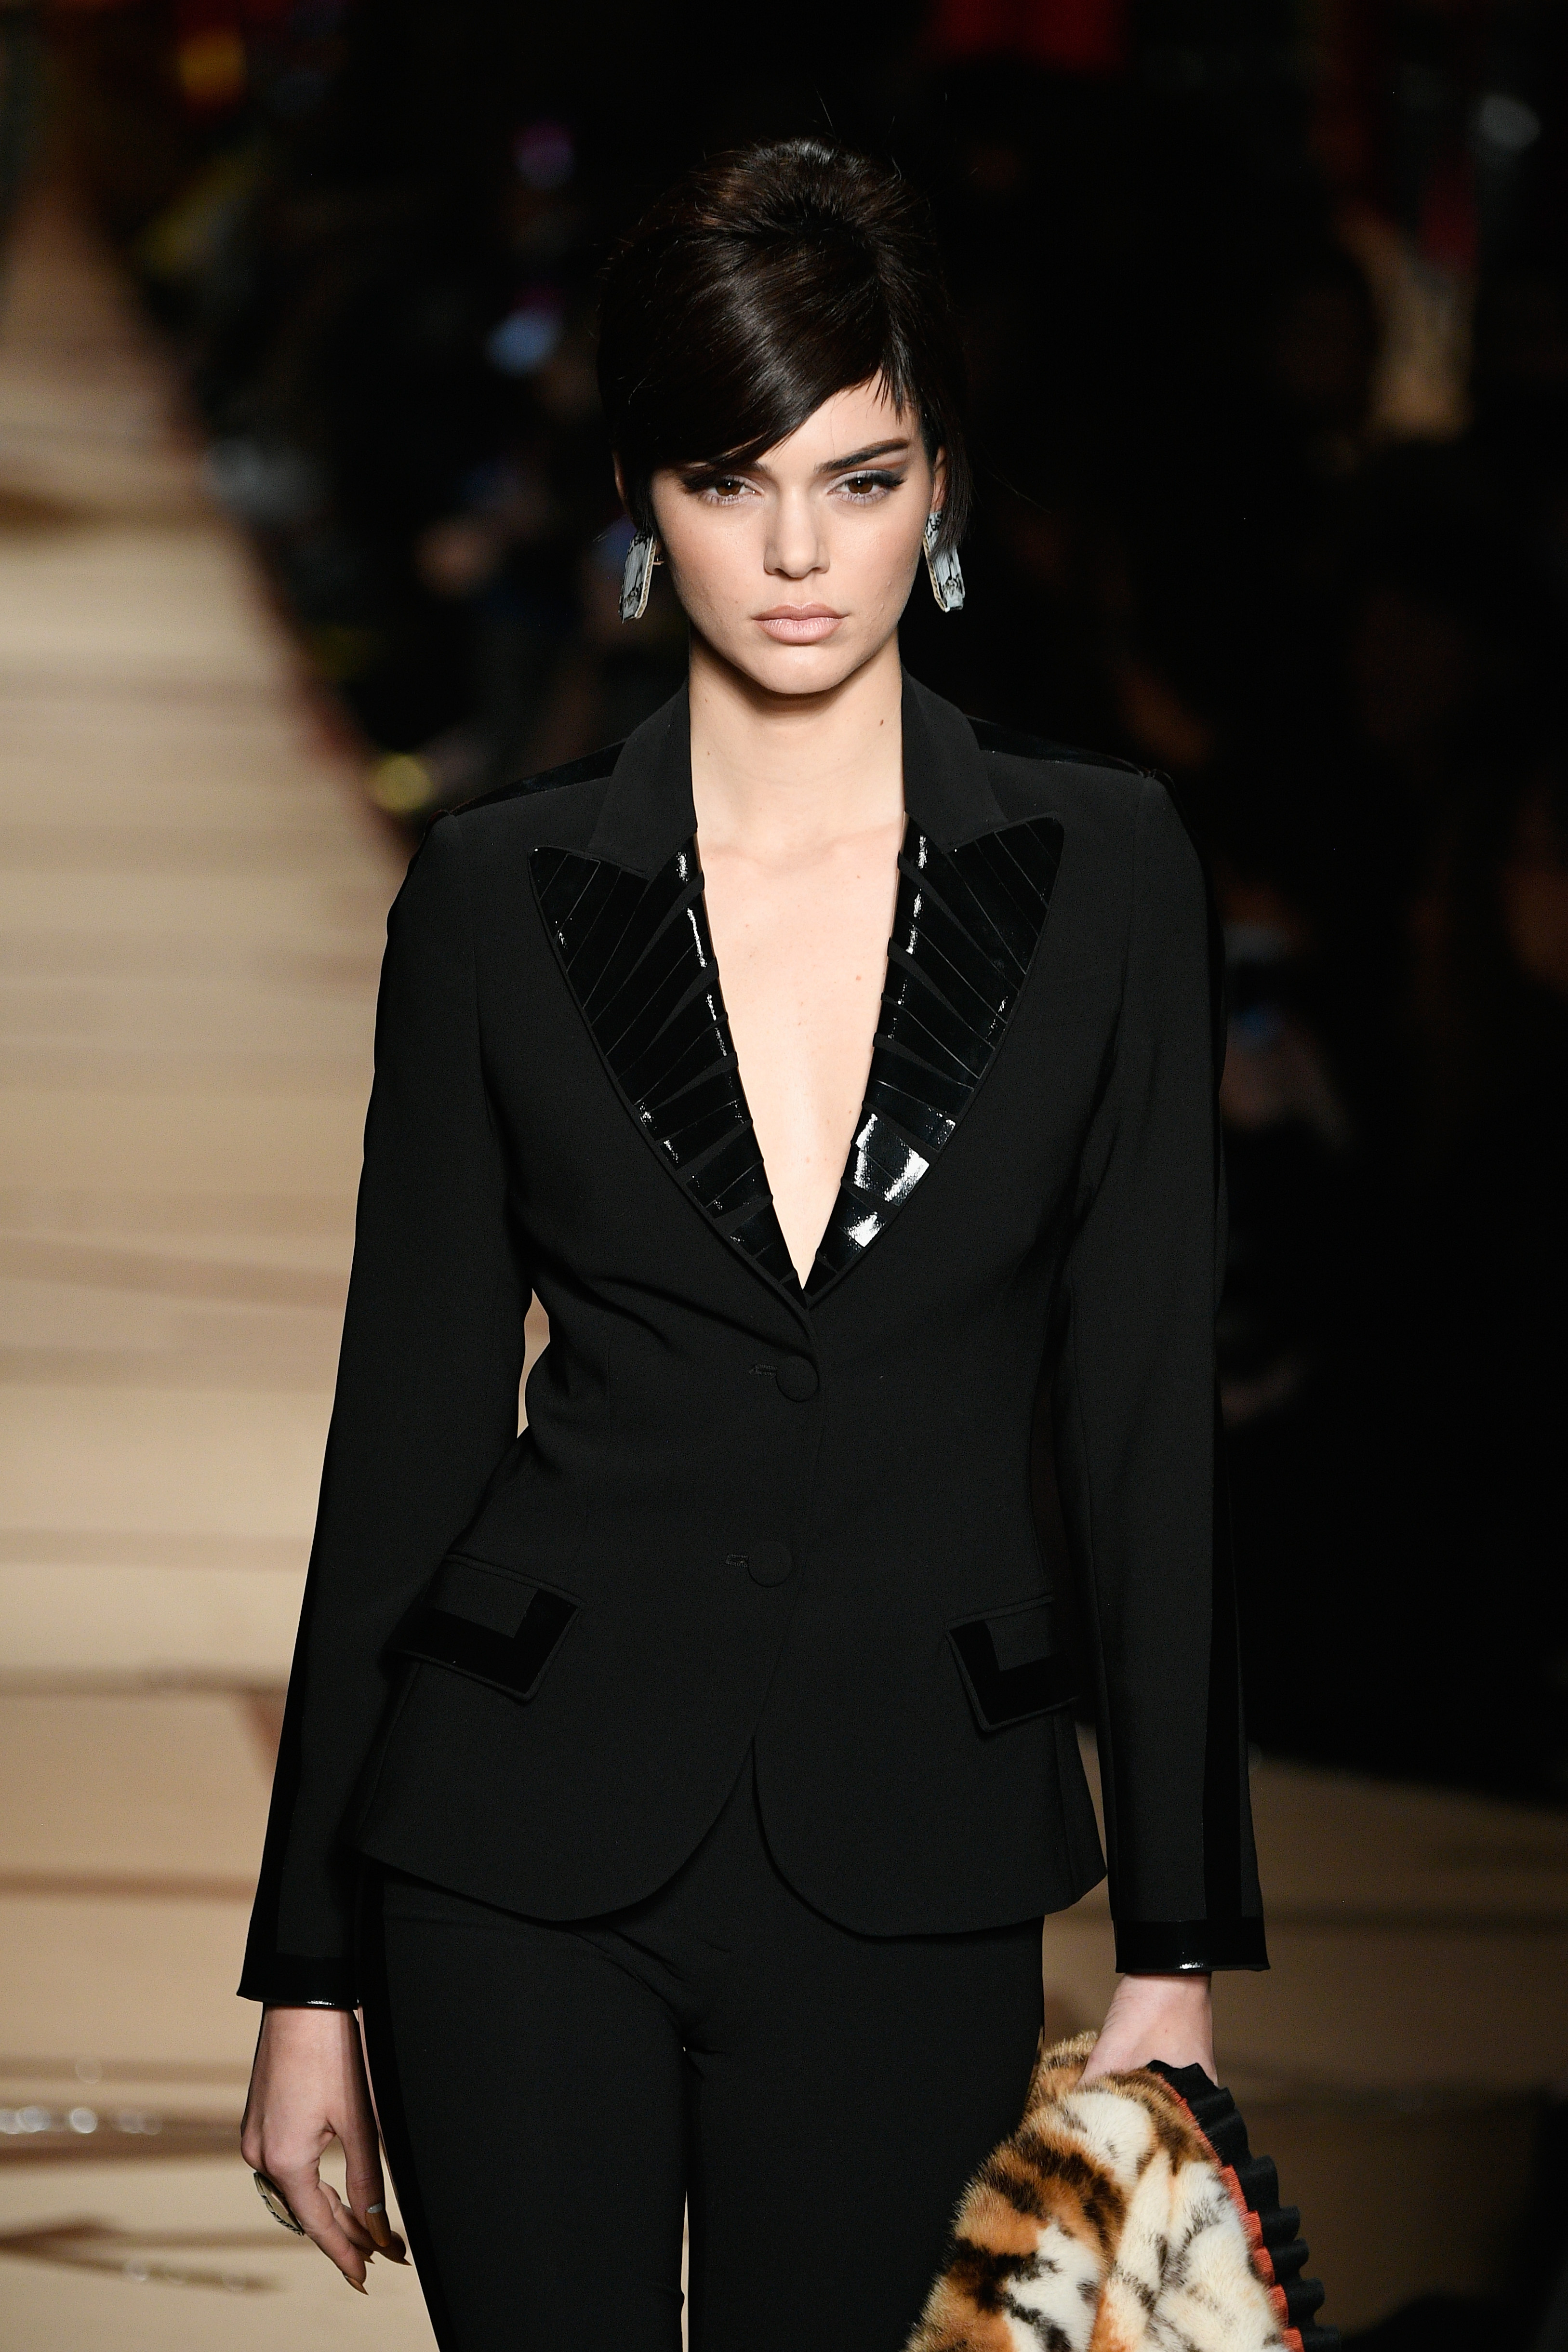 "<p>When it comes to fashion the Kardashian clan's default setting is less is more, when it comes to fabric not accessories. The glittering exception to the rule is supermodel, Estee Lauder spokesmodel and free the nipple campaigner who revealed her surprising season essential on her app.</p> <p>""Blazers are the easiest coats for spring weather,"" Kendall says, as the northern hemisphere starts to heat up after a bitter winter. Memo to Kendall, they're also good for autumn (that's fall to you).<br /> Kendall has been working the trend for some months in between her regular runway gigs and has a slew of favourites. ""The black double-breasted Dior jacket I wore in Paris was a new twist that I'm loving right now and the red Magda Burtyn I put over my Gucci sweatshirt was a quick way to polish that look.""</p> <p> Here's Kendall blazing trails along with some runway stimulation for you to suit up this season.</p> <p>Moschino, A/W 17.</p>"